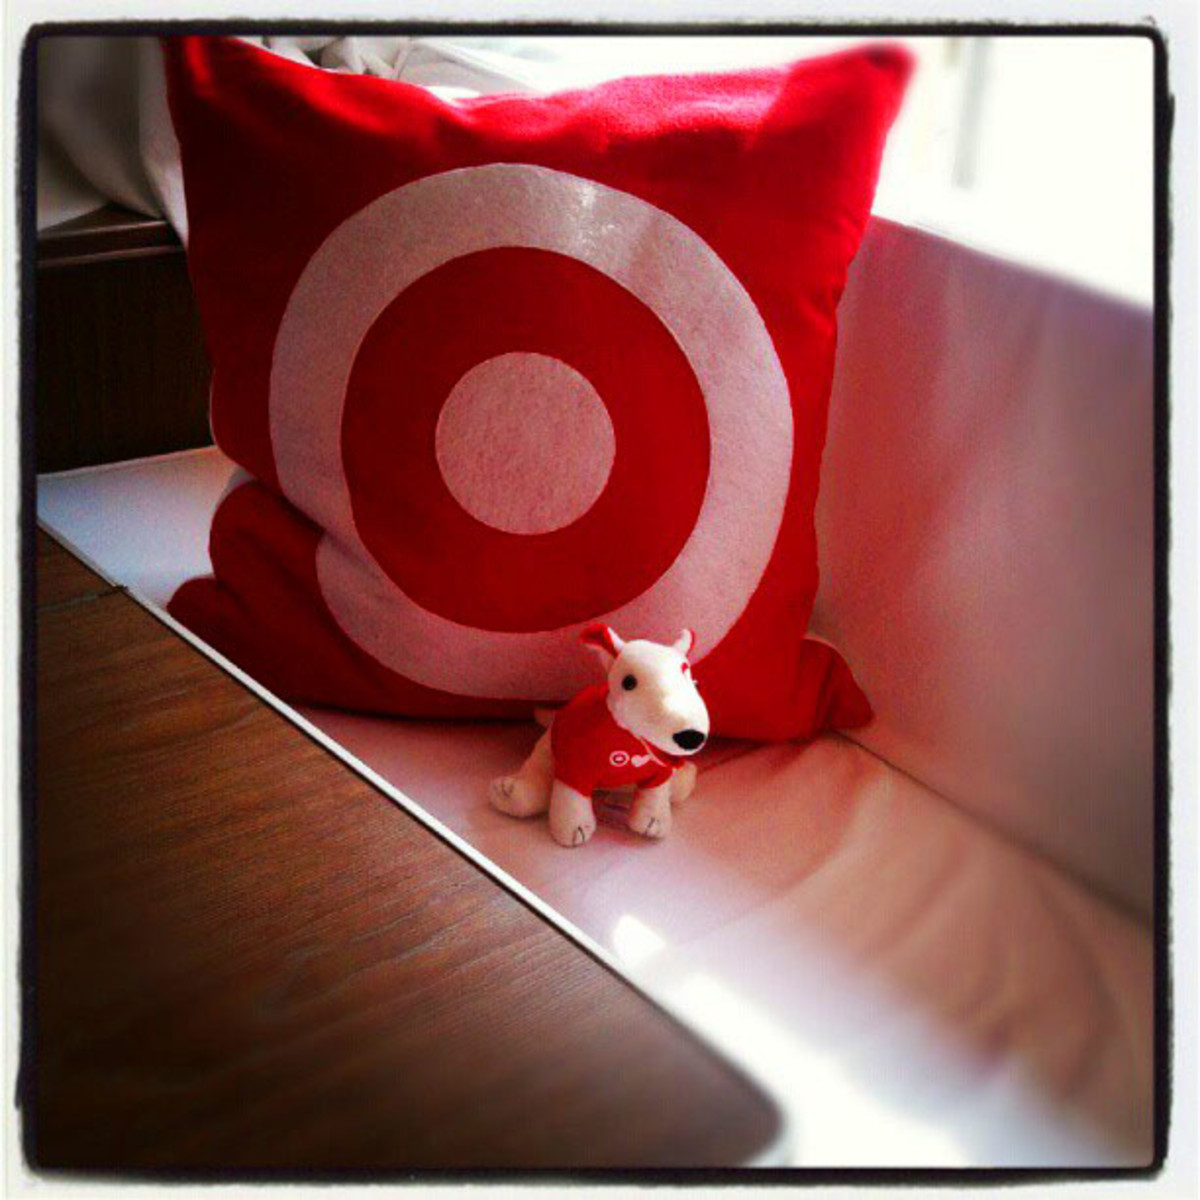 Target Hotel_Airstream and Bullseye mascot toy